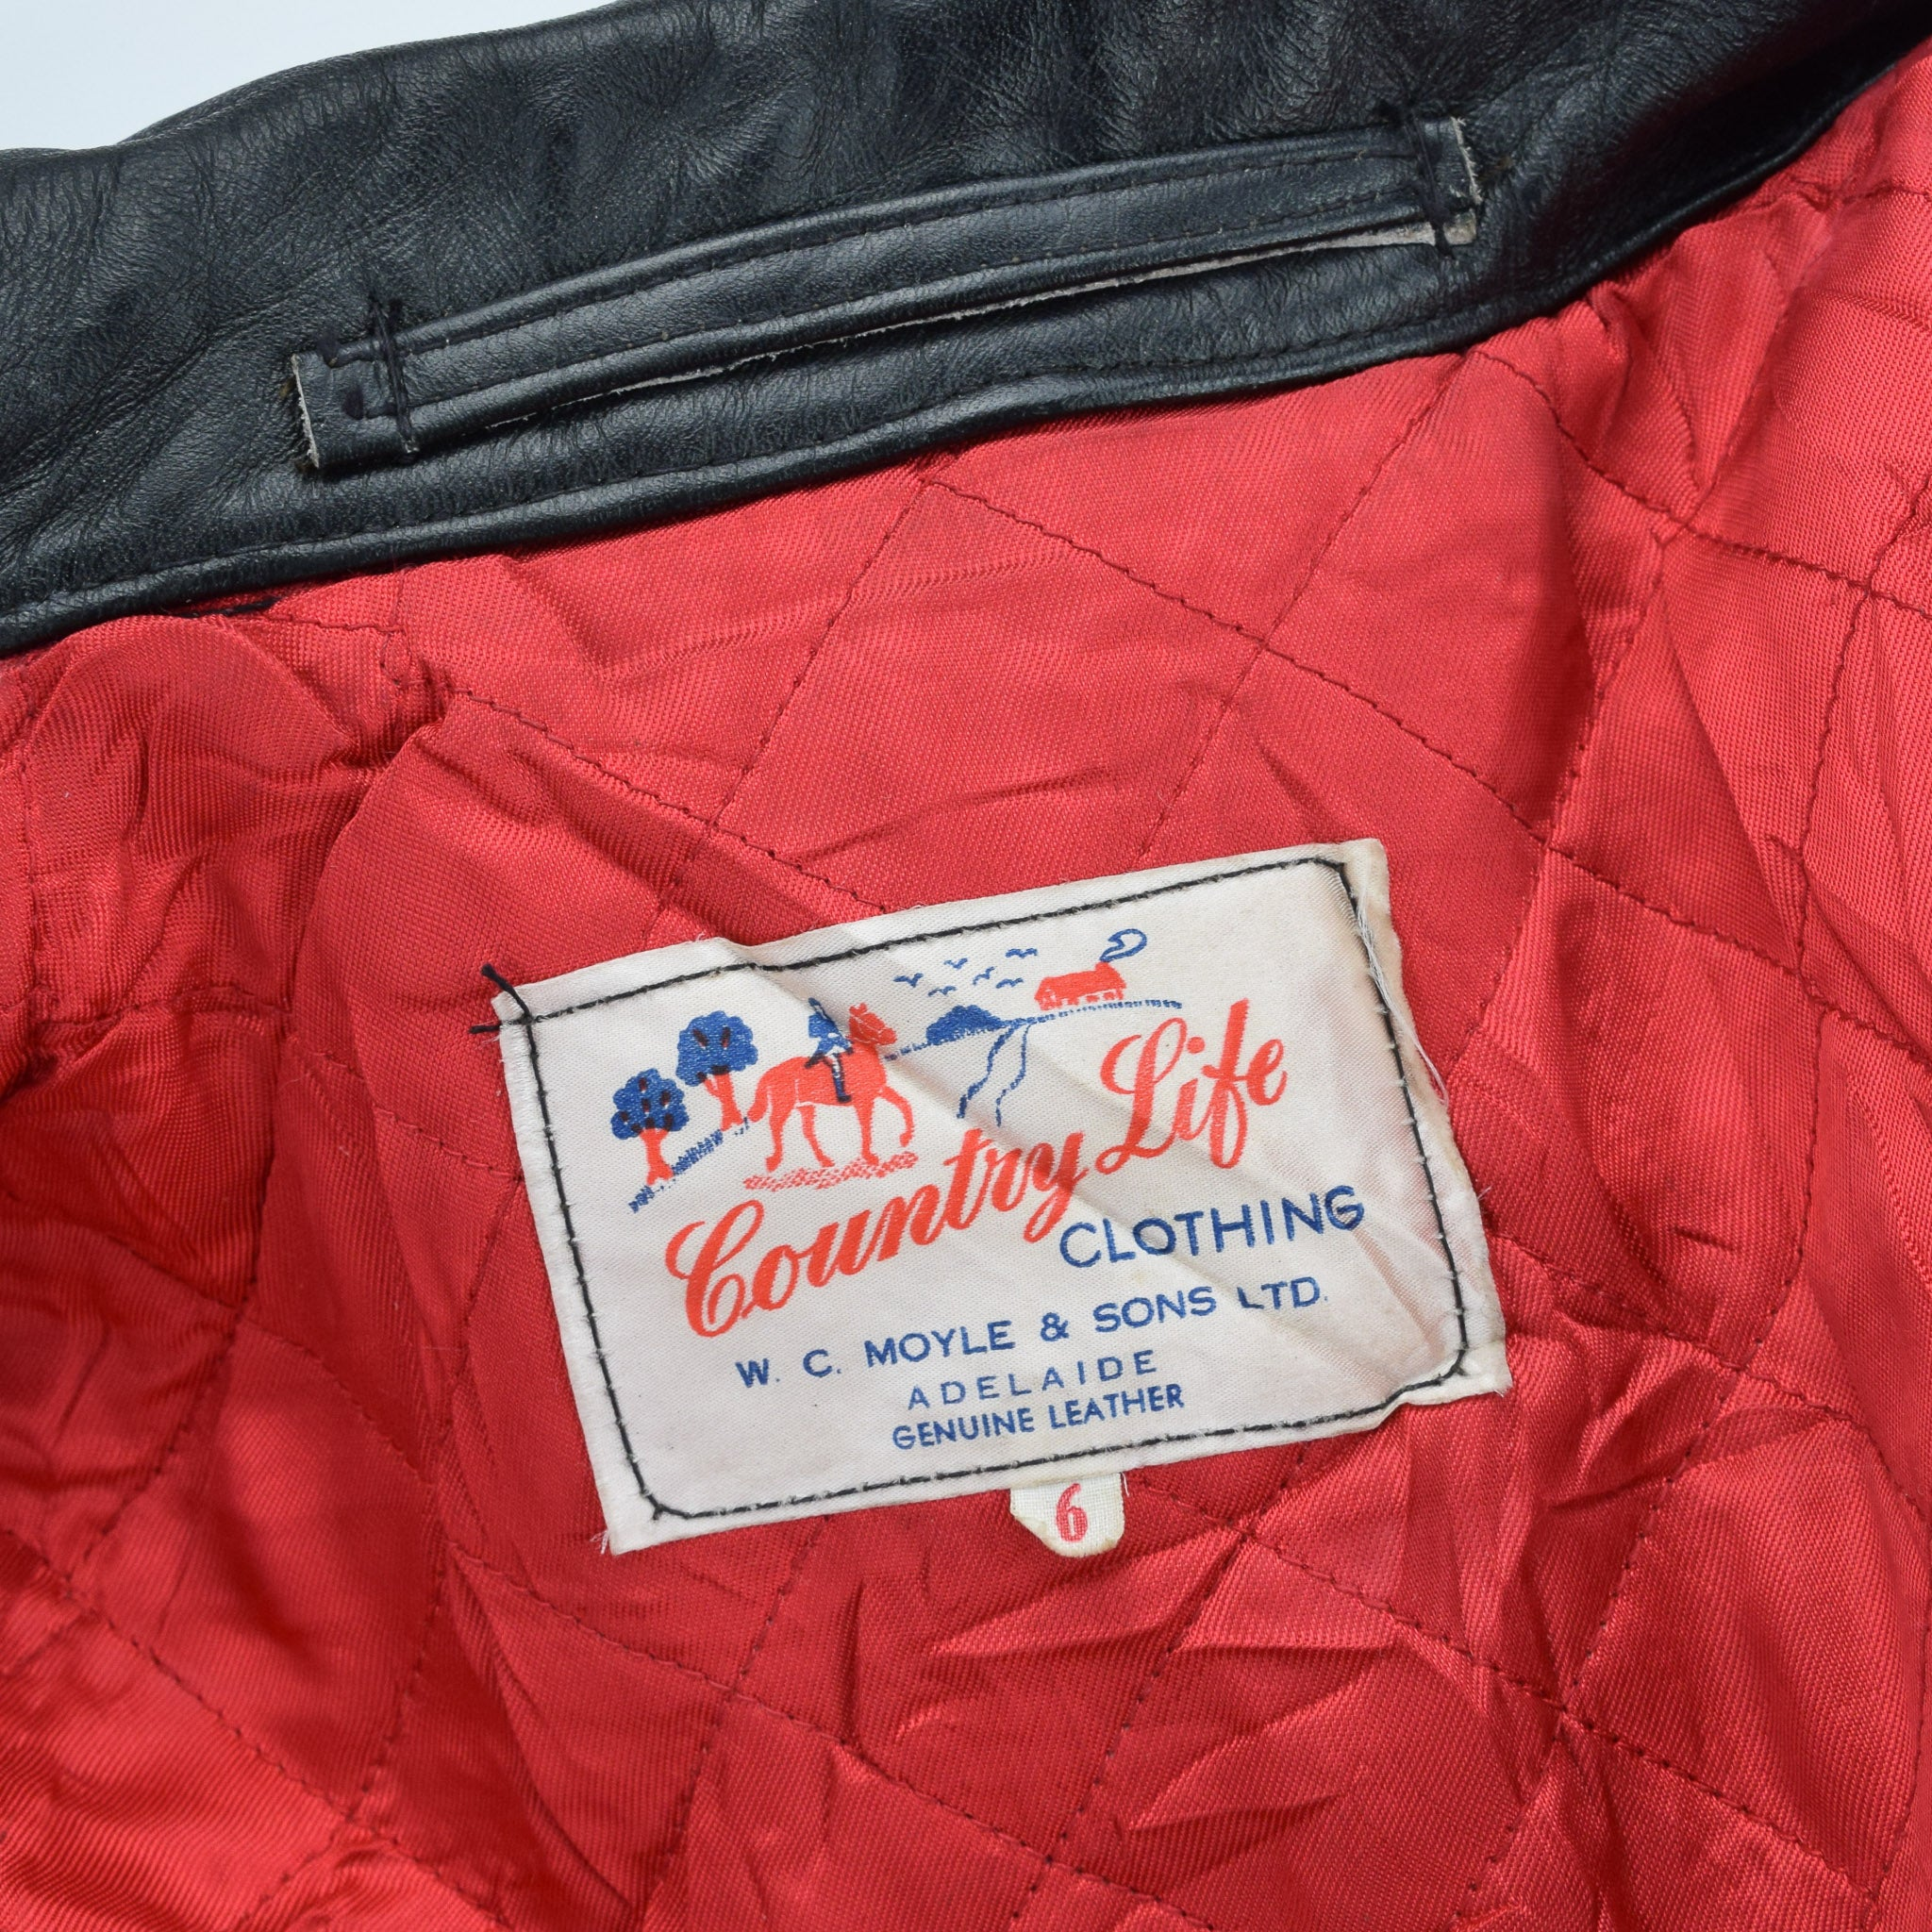 Vintage Country Life Adelaide Belted Leather Outdoor Jacket Lightning Zips M label